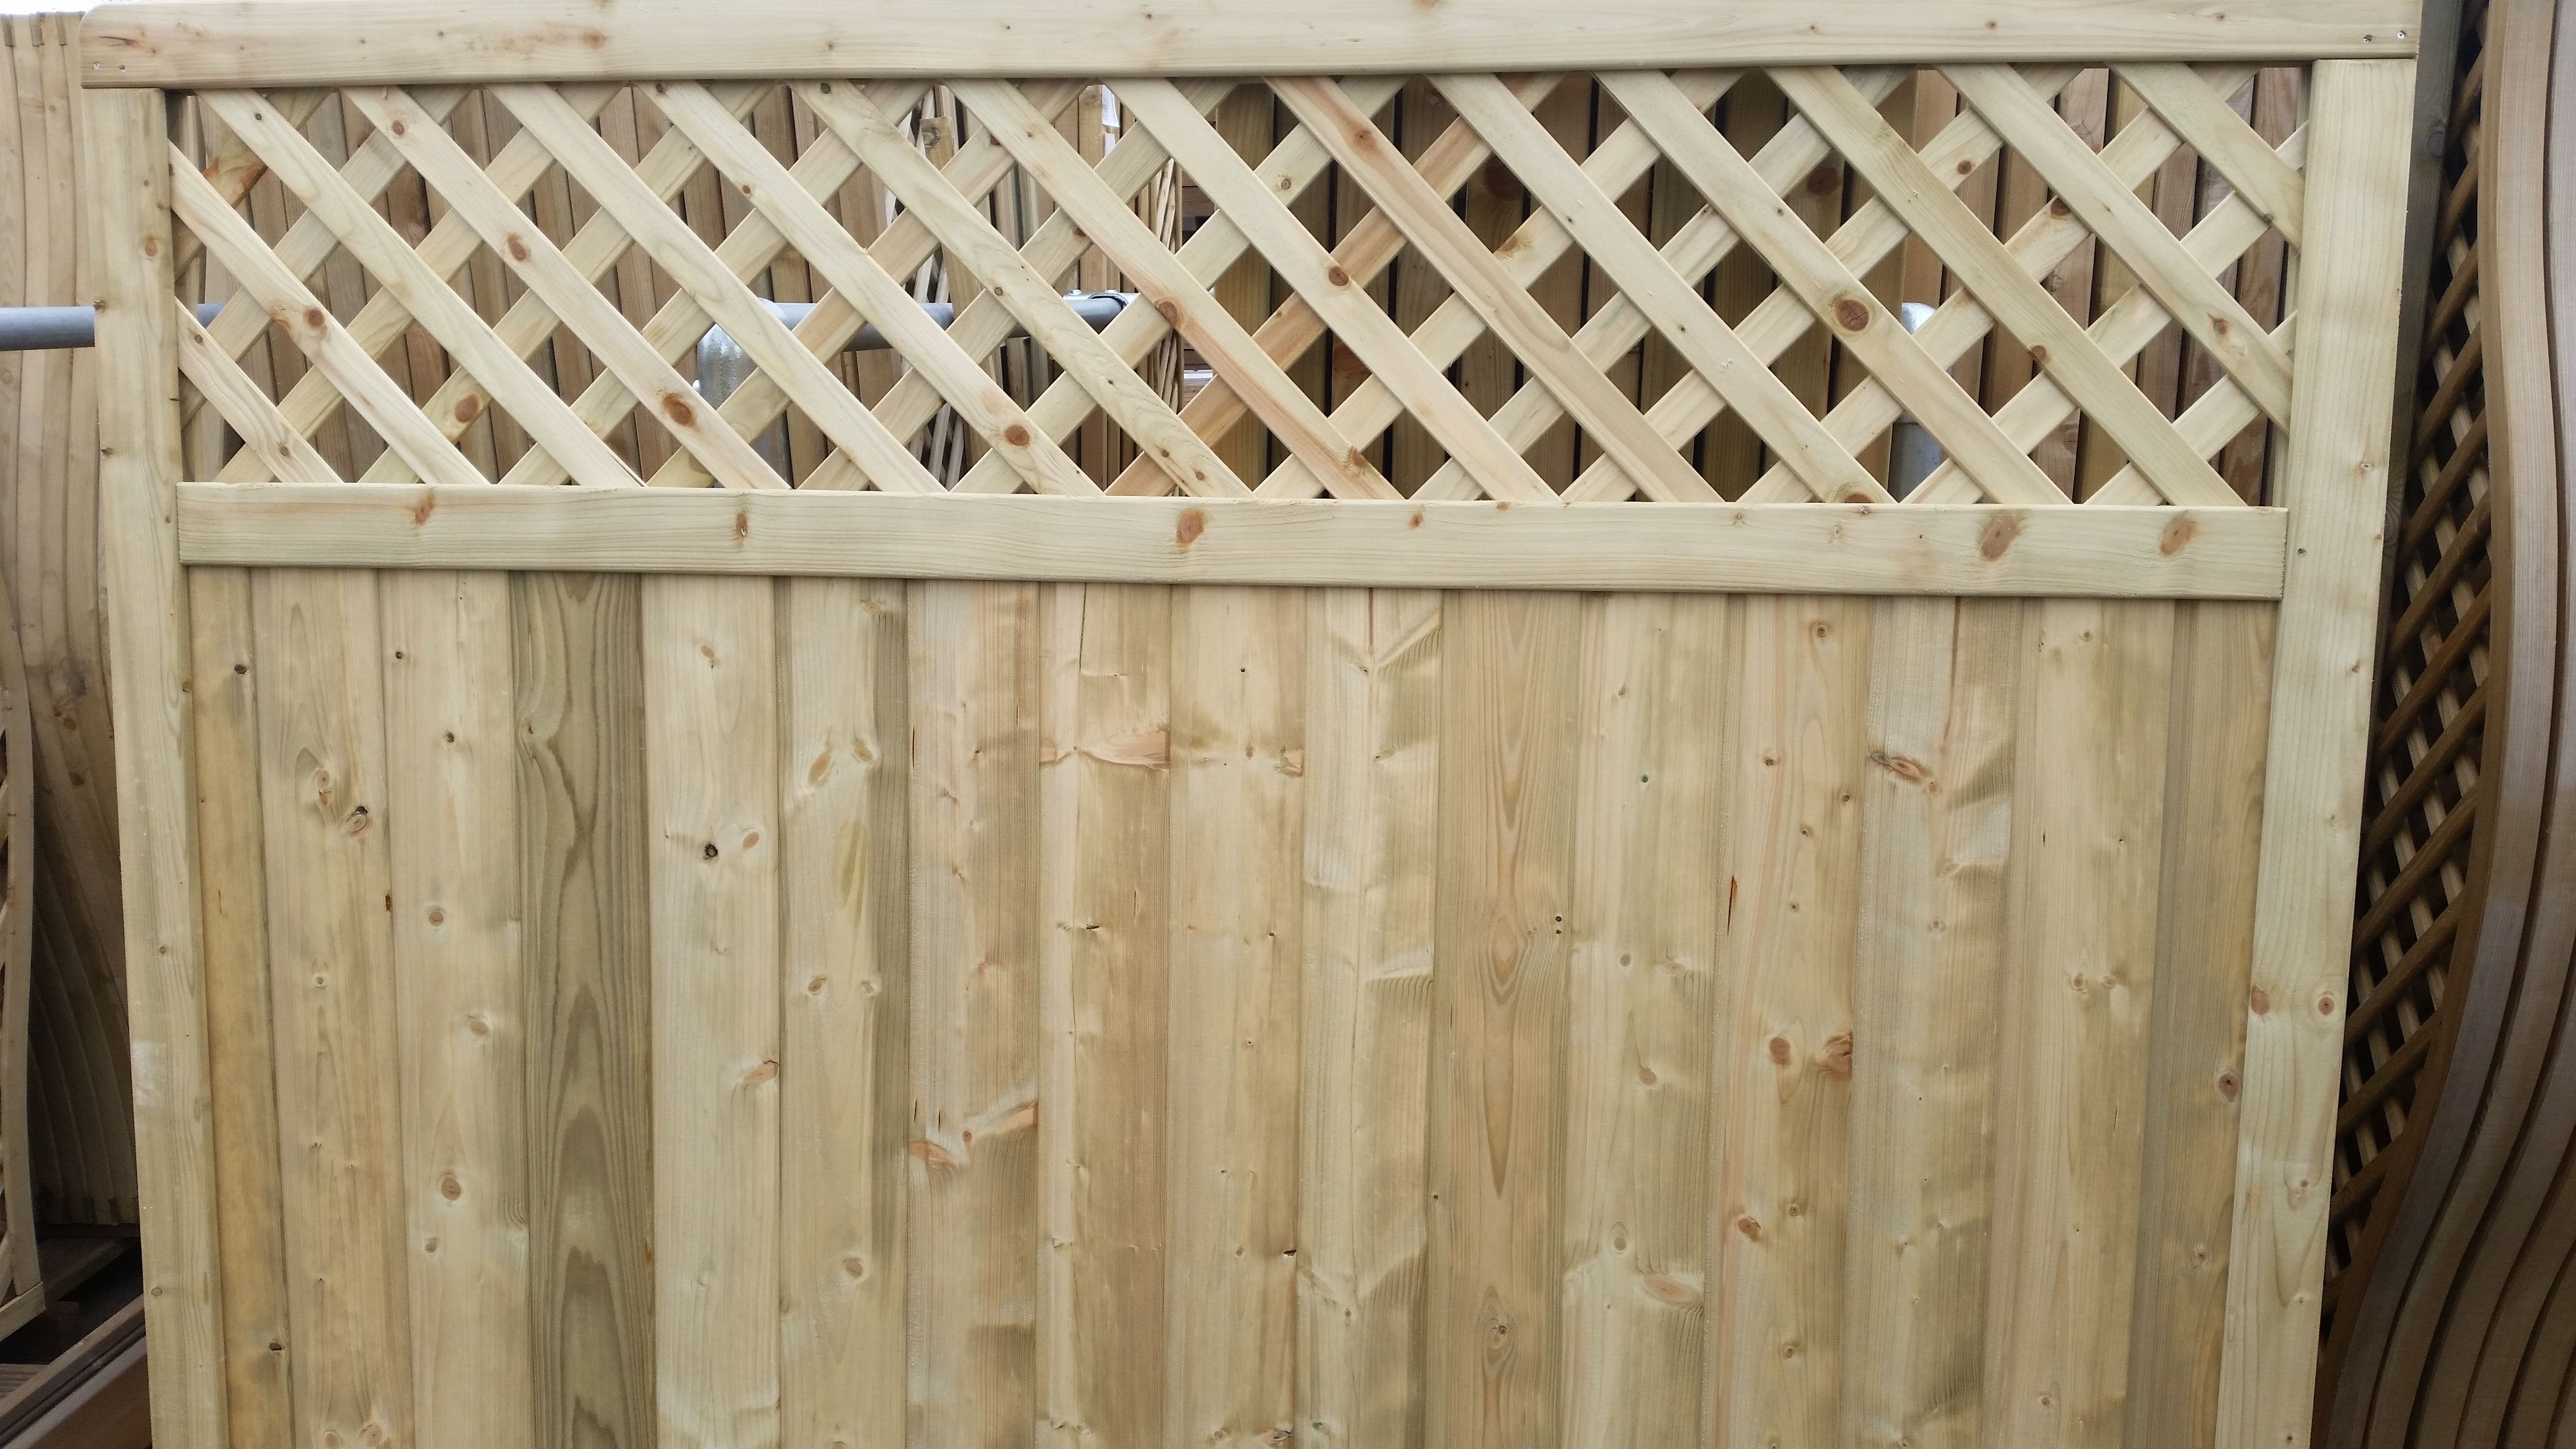 Tongue and groove lattice top panel oakdale fencing tongue and groove lattice top panel baanklon Images